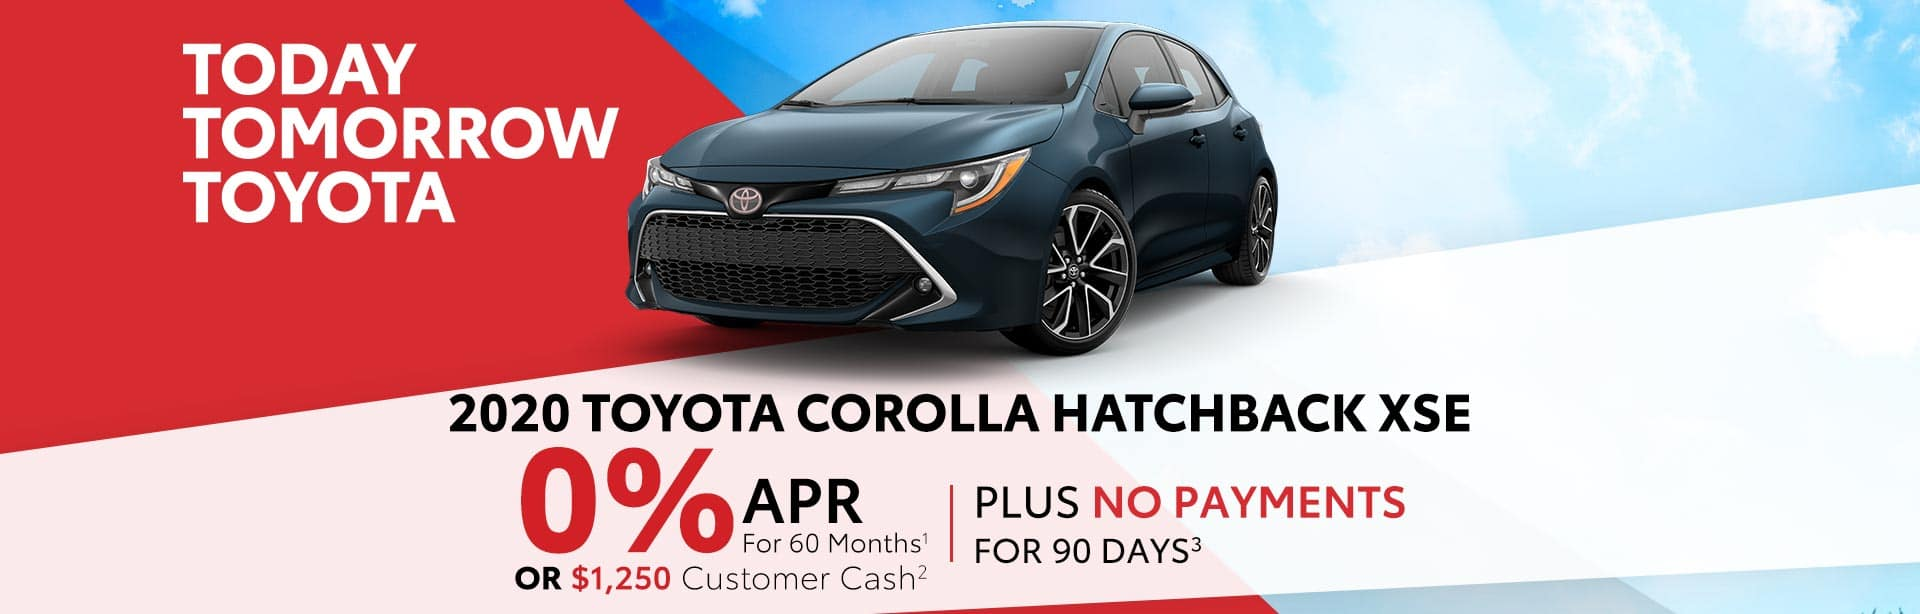 0% APR on a new 2020 Corolla Hatchback near Columbus, Indiana